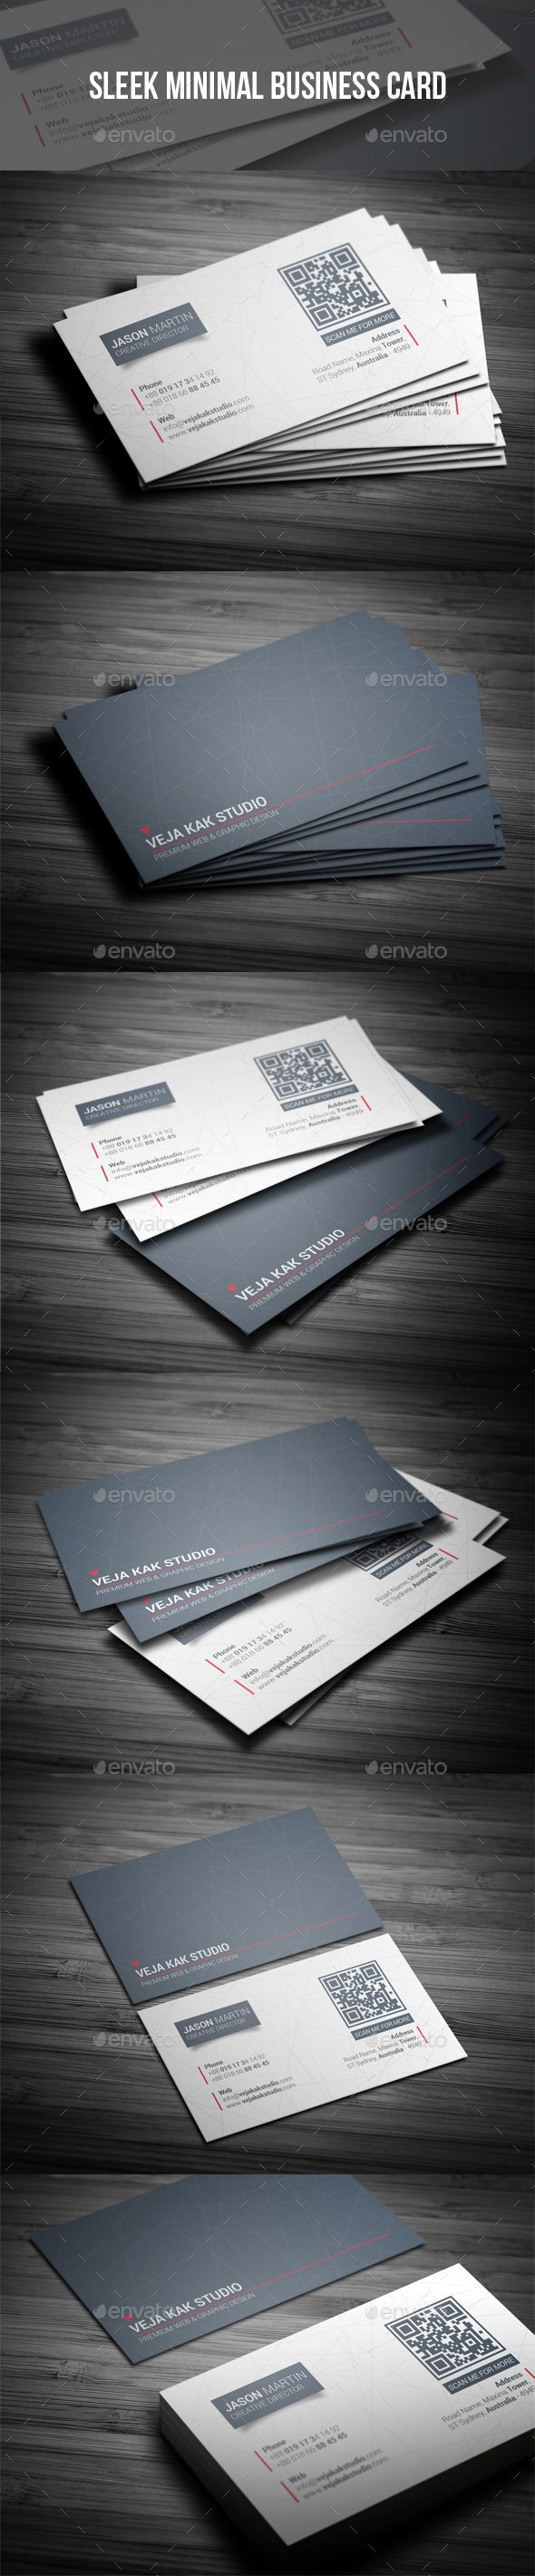 189 Best Creative Business Cards Images On Pinterest Creative